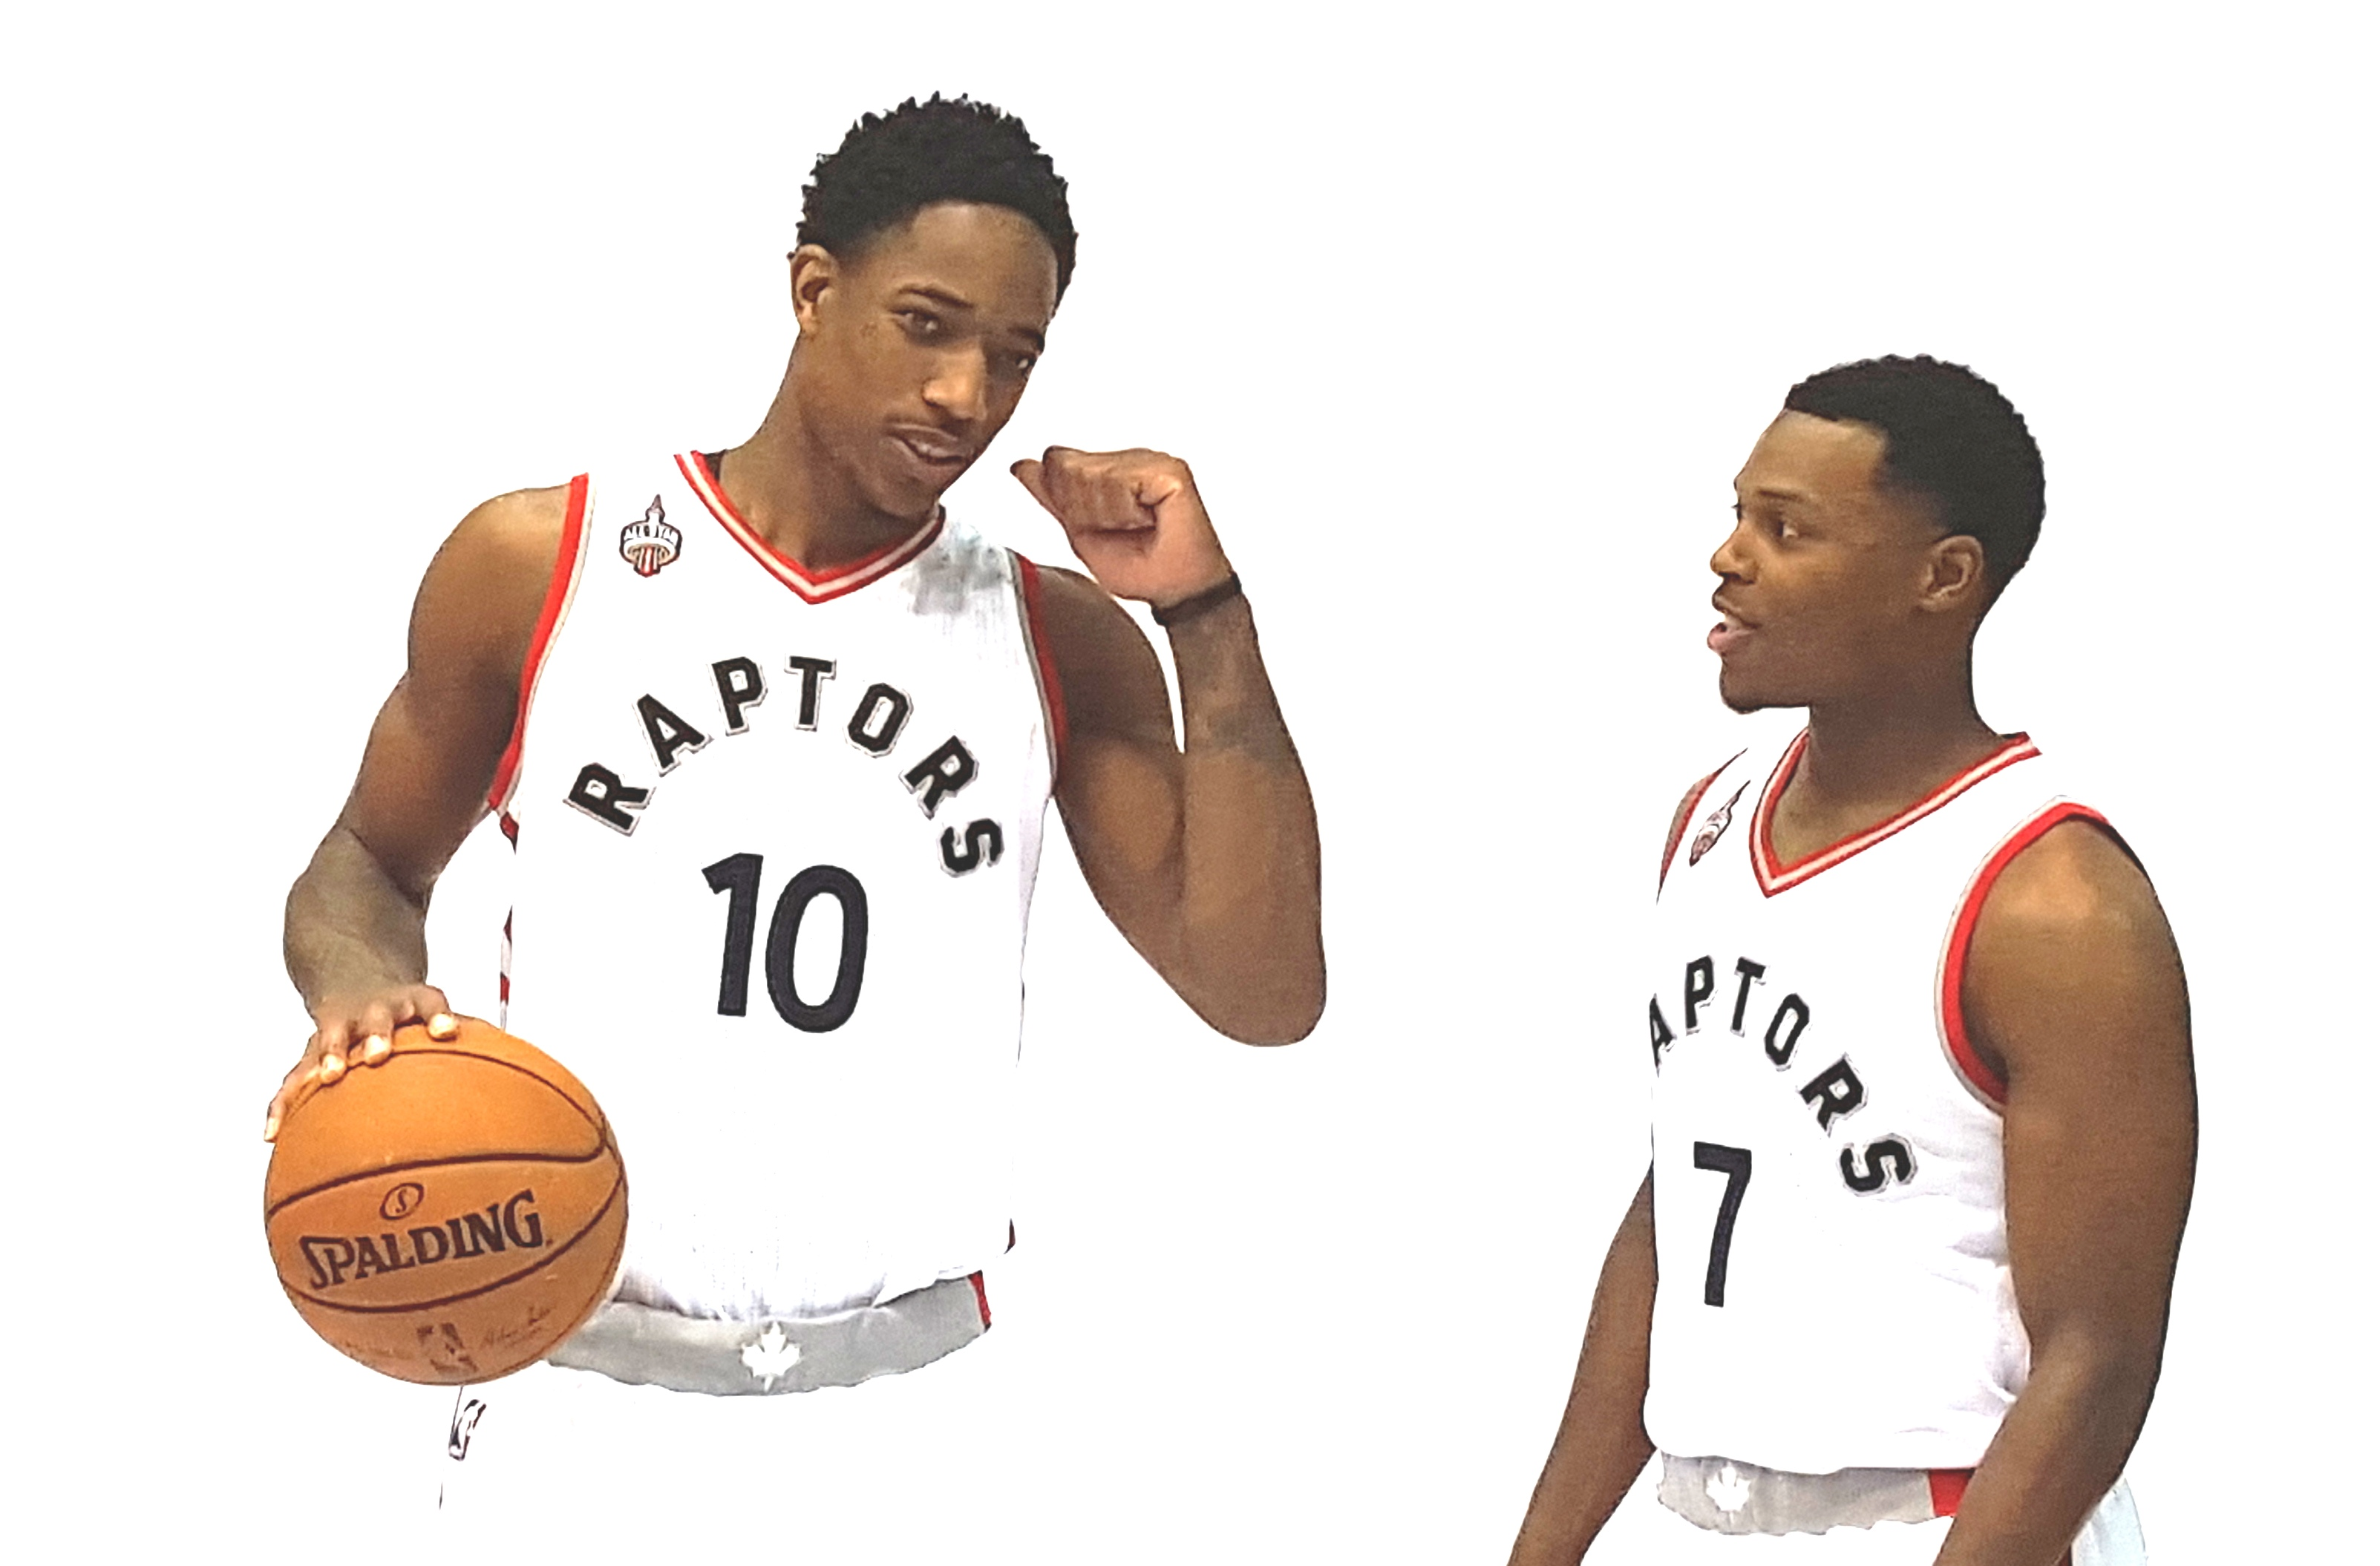 Demar-derozan-and-kyle-lowry-media-day-2015-posing